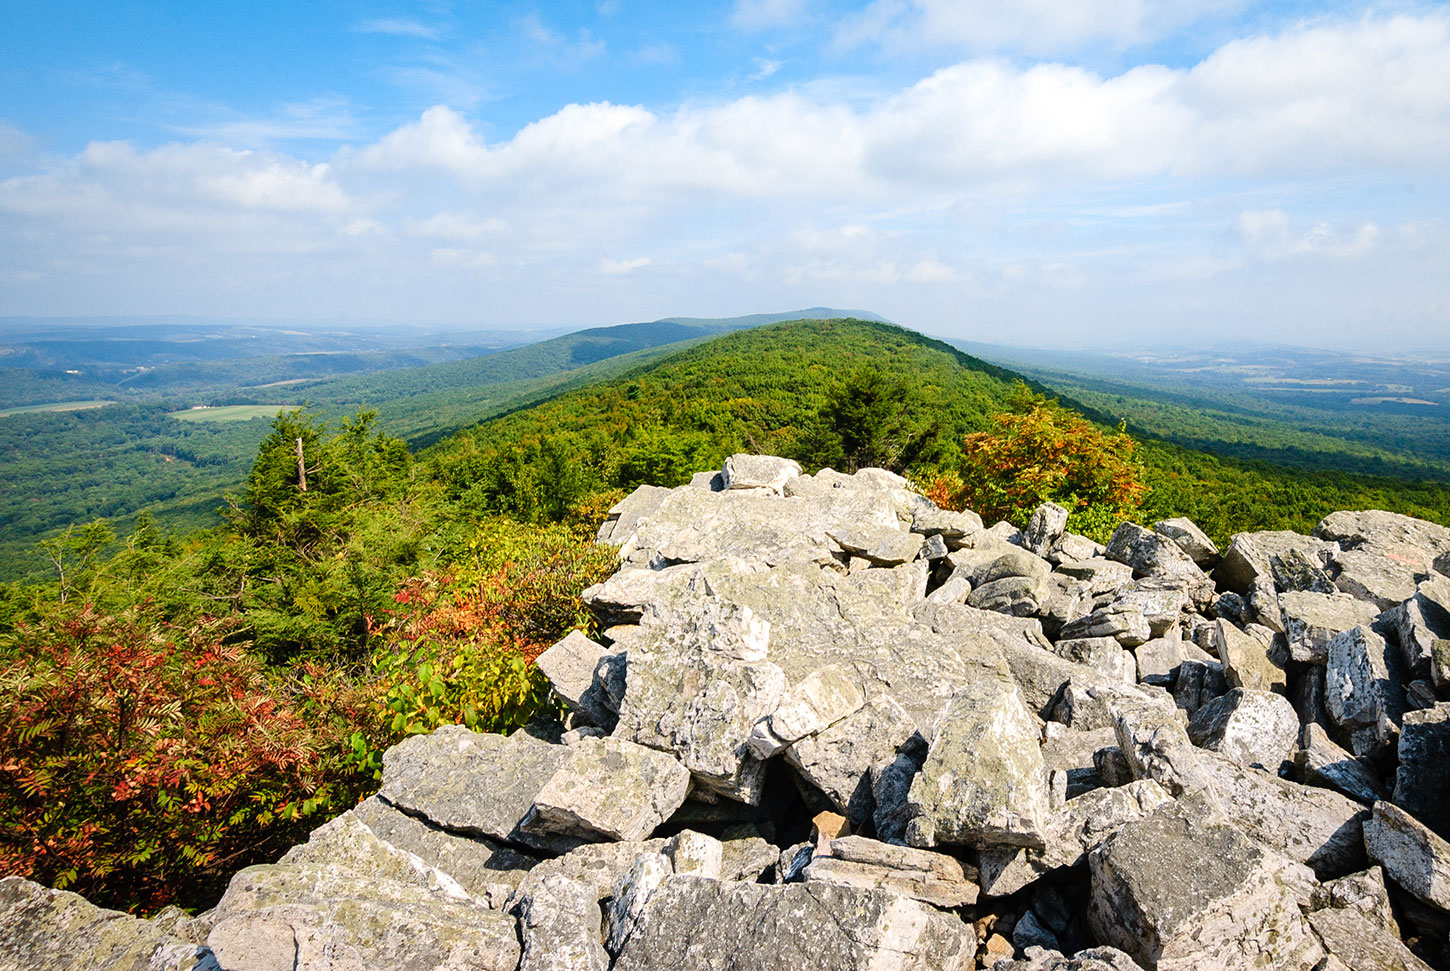 The view from atop Hawk Mountain, Pennsylvania